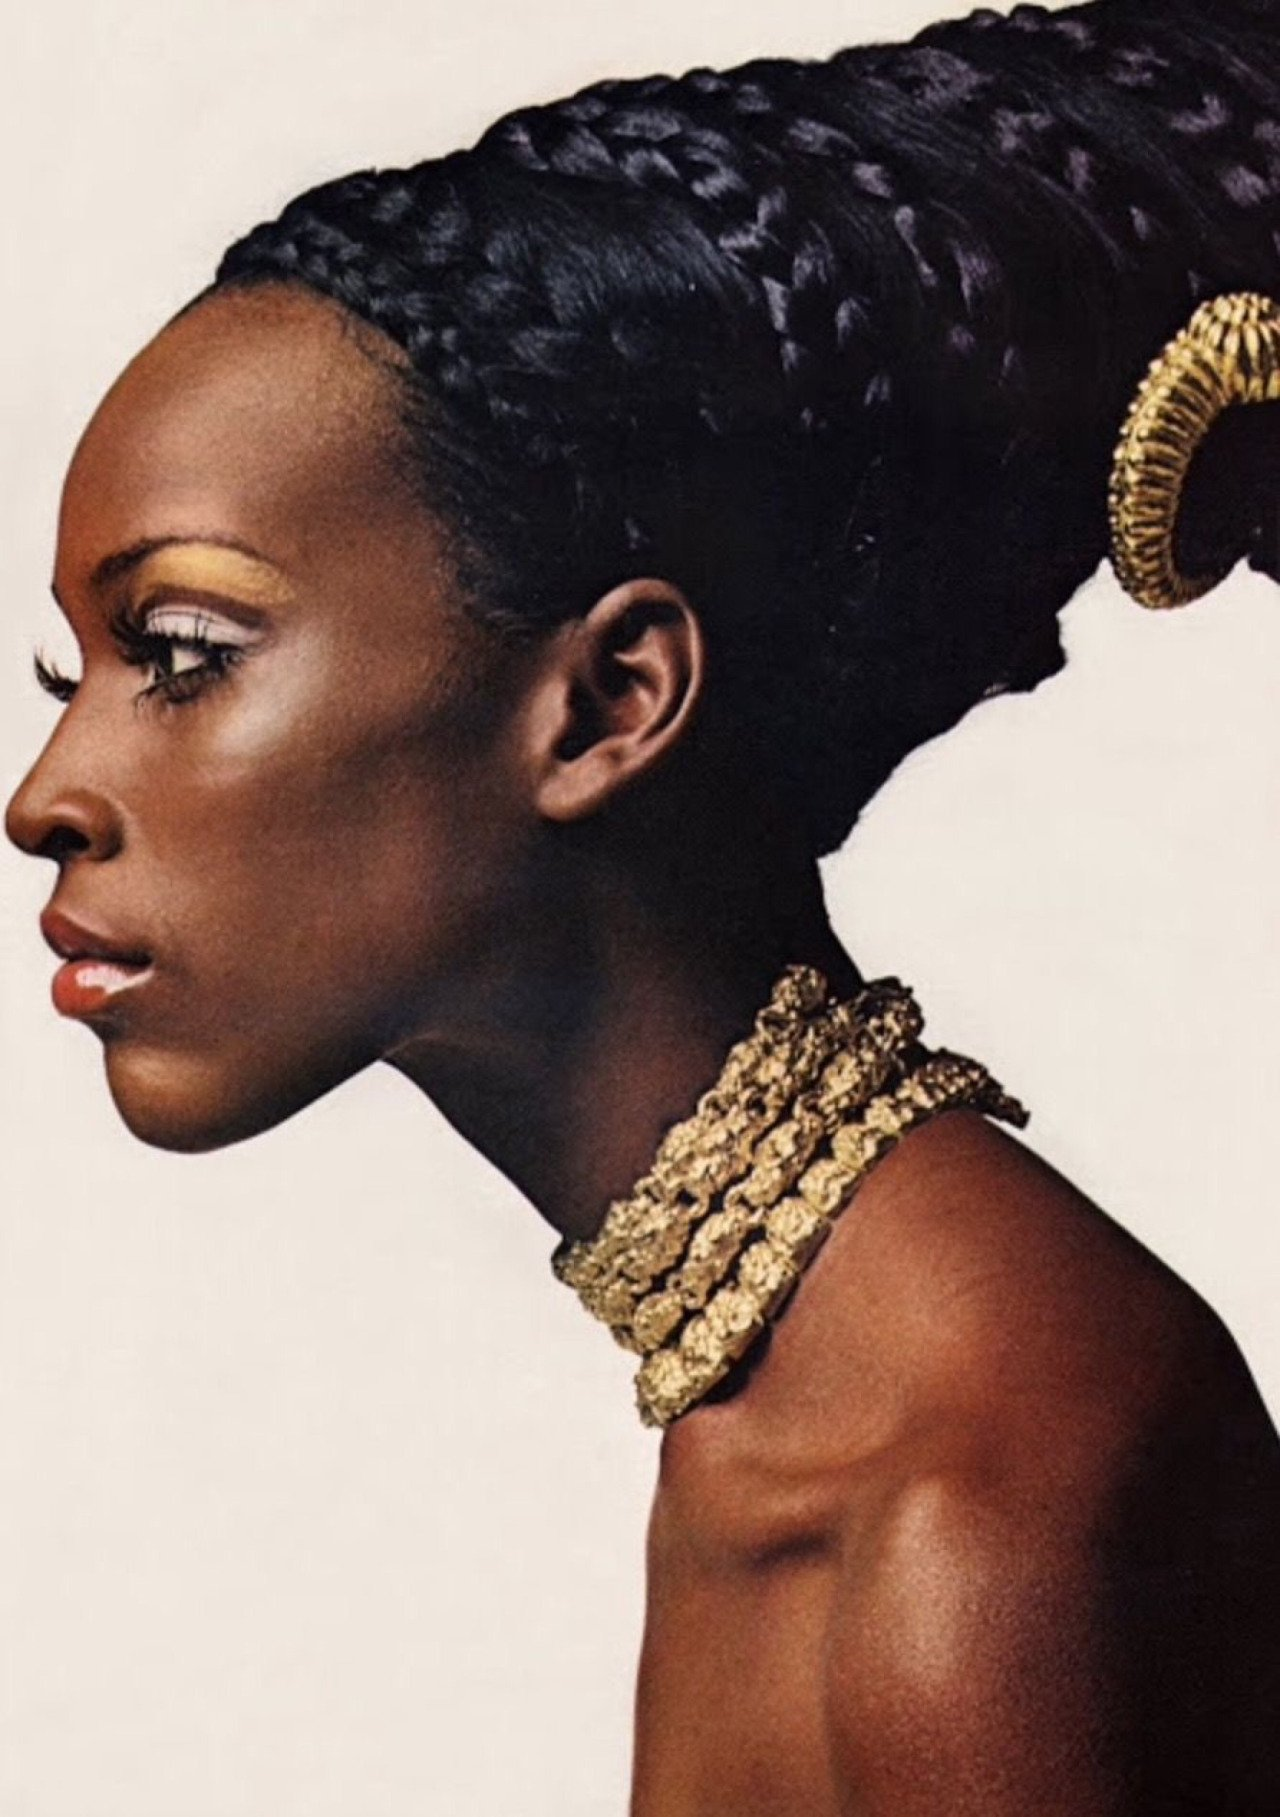 Iconic Black Models Who Changed The Fashion Industry 》 Her